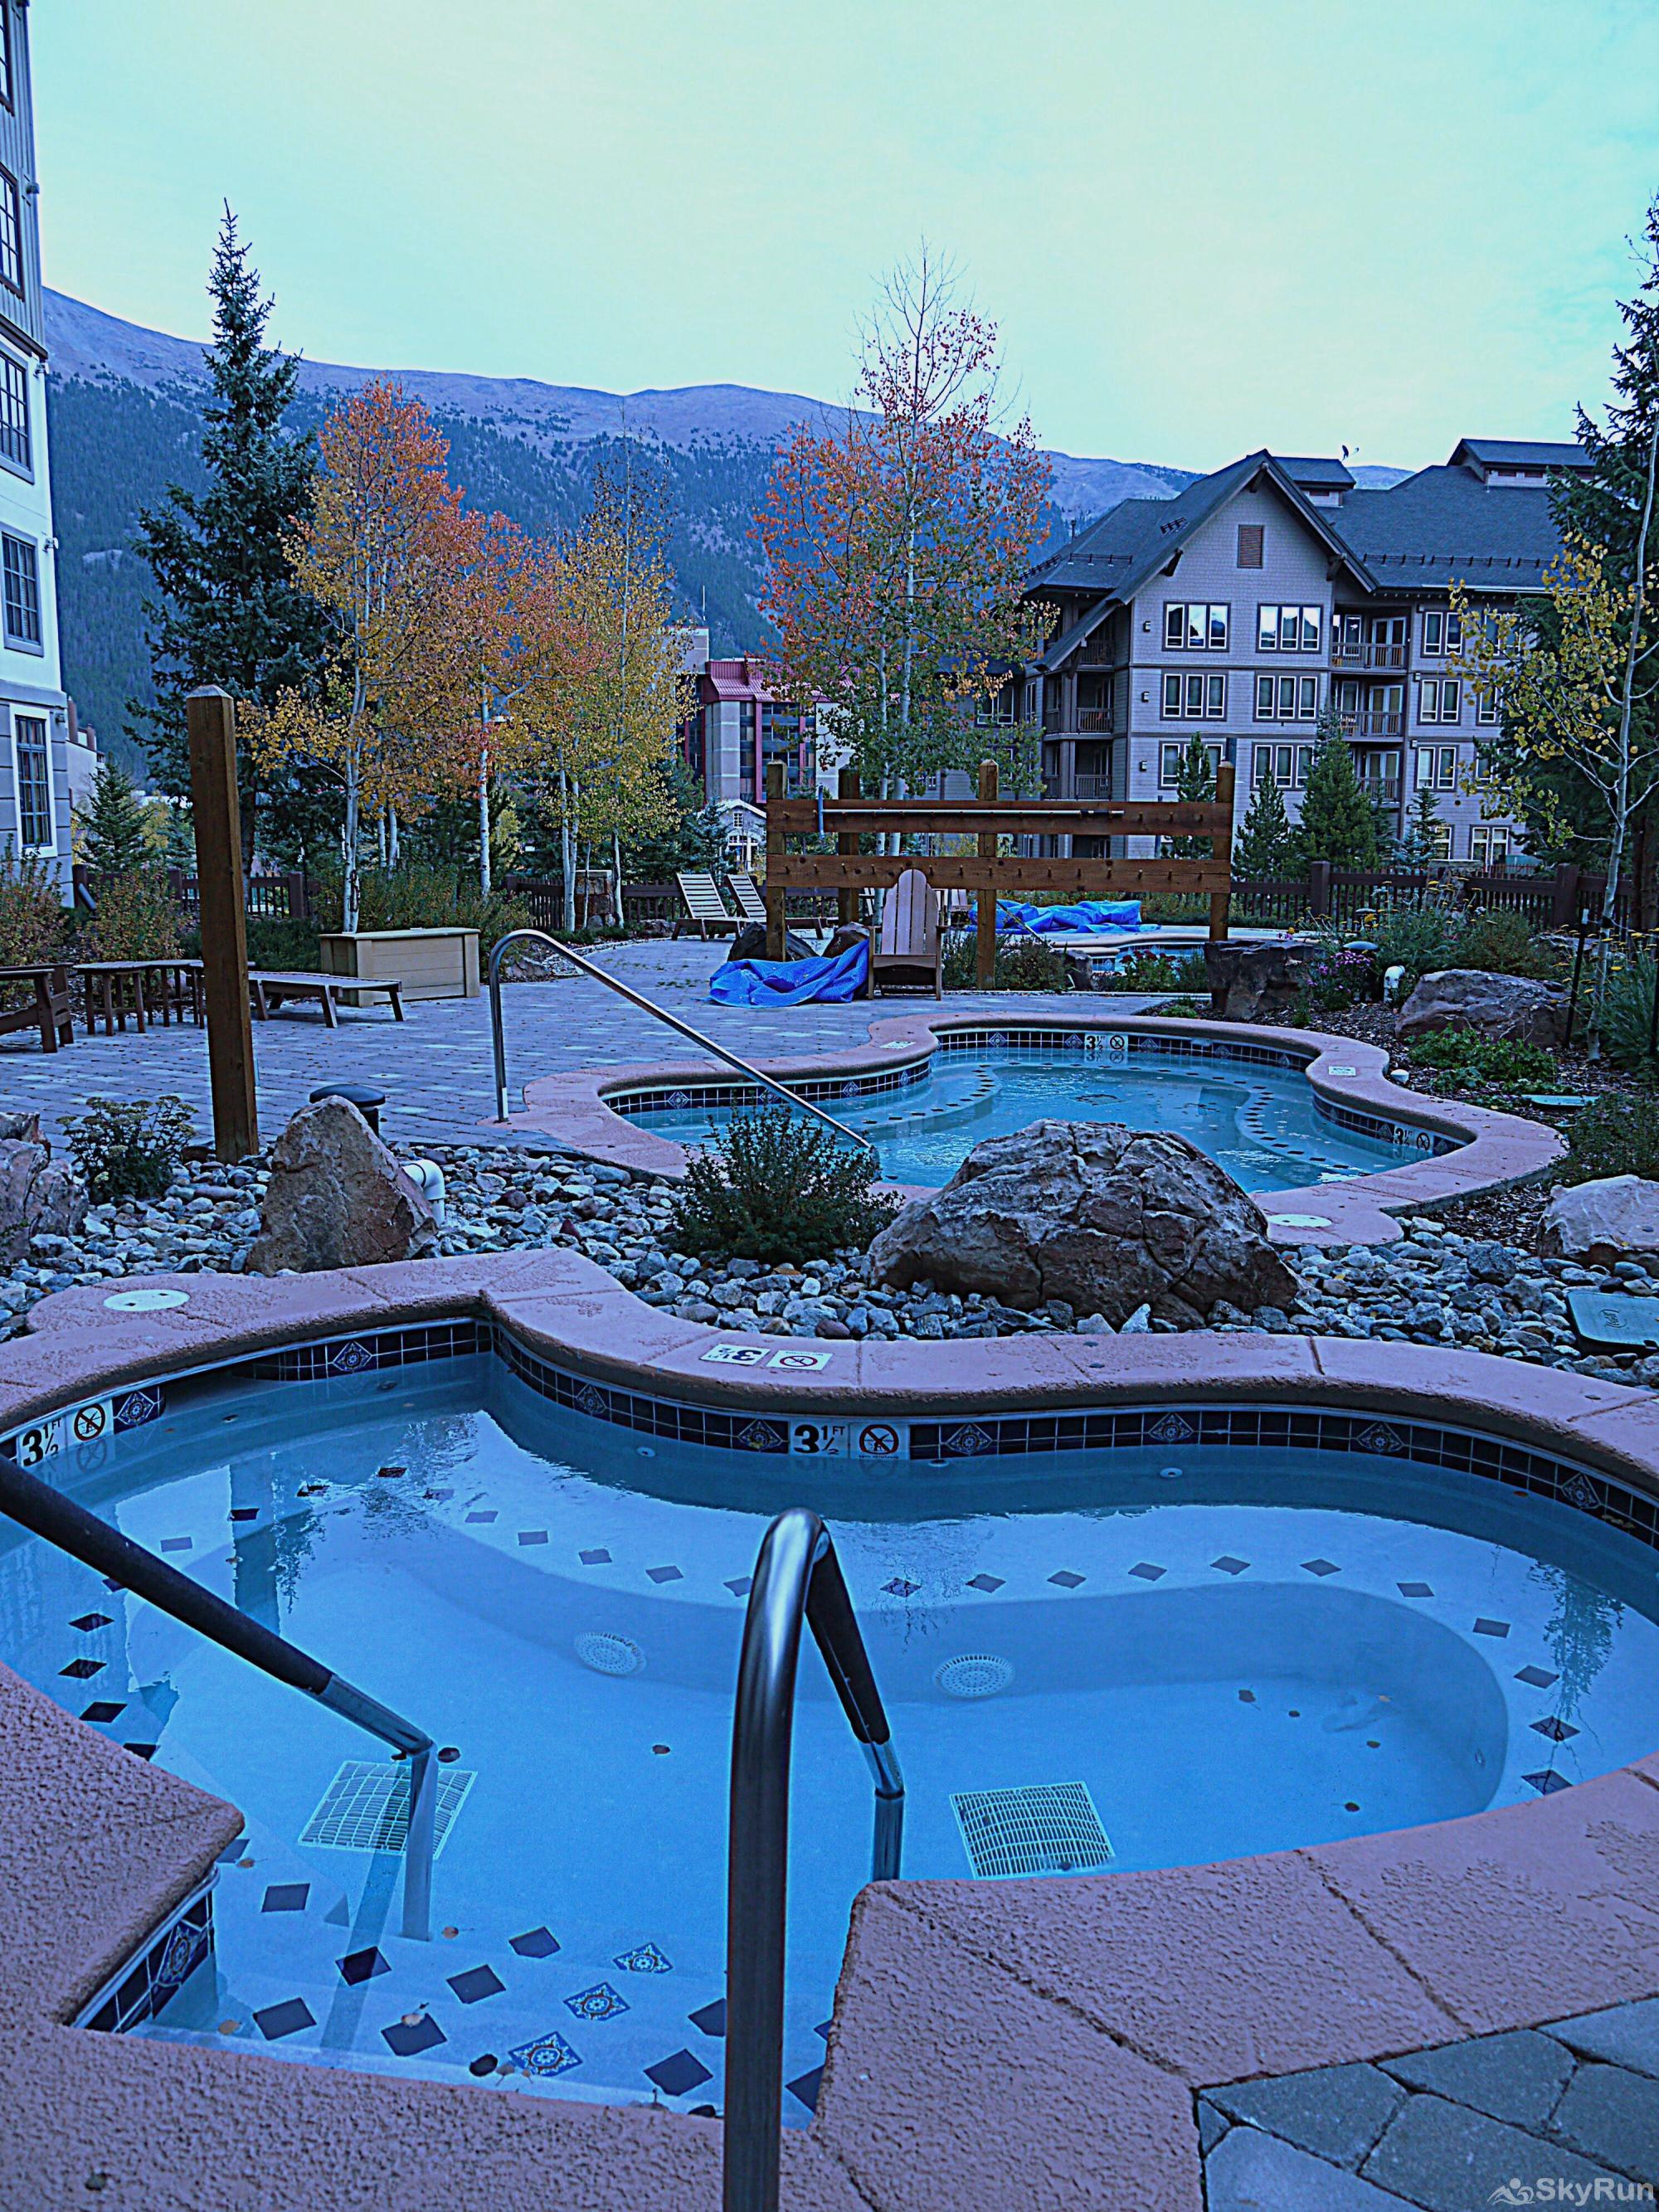 PP502 Passage Point Hot Tubs